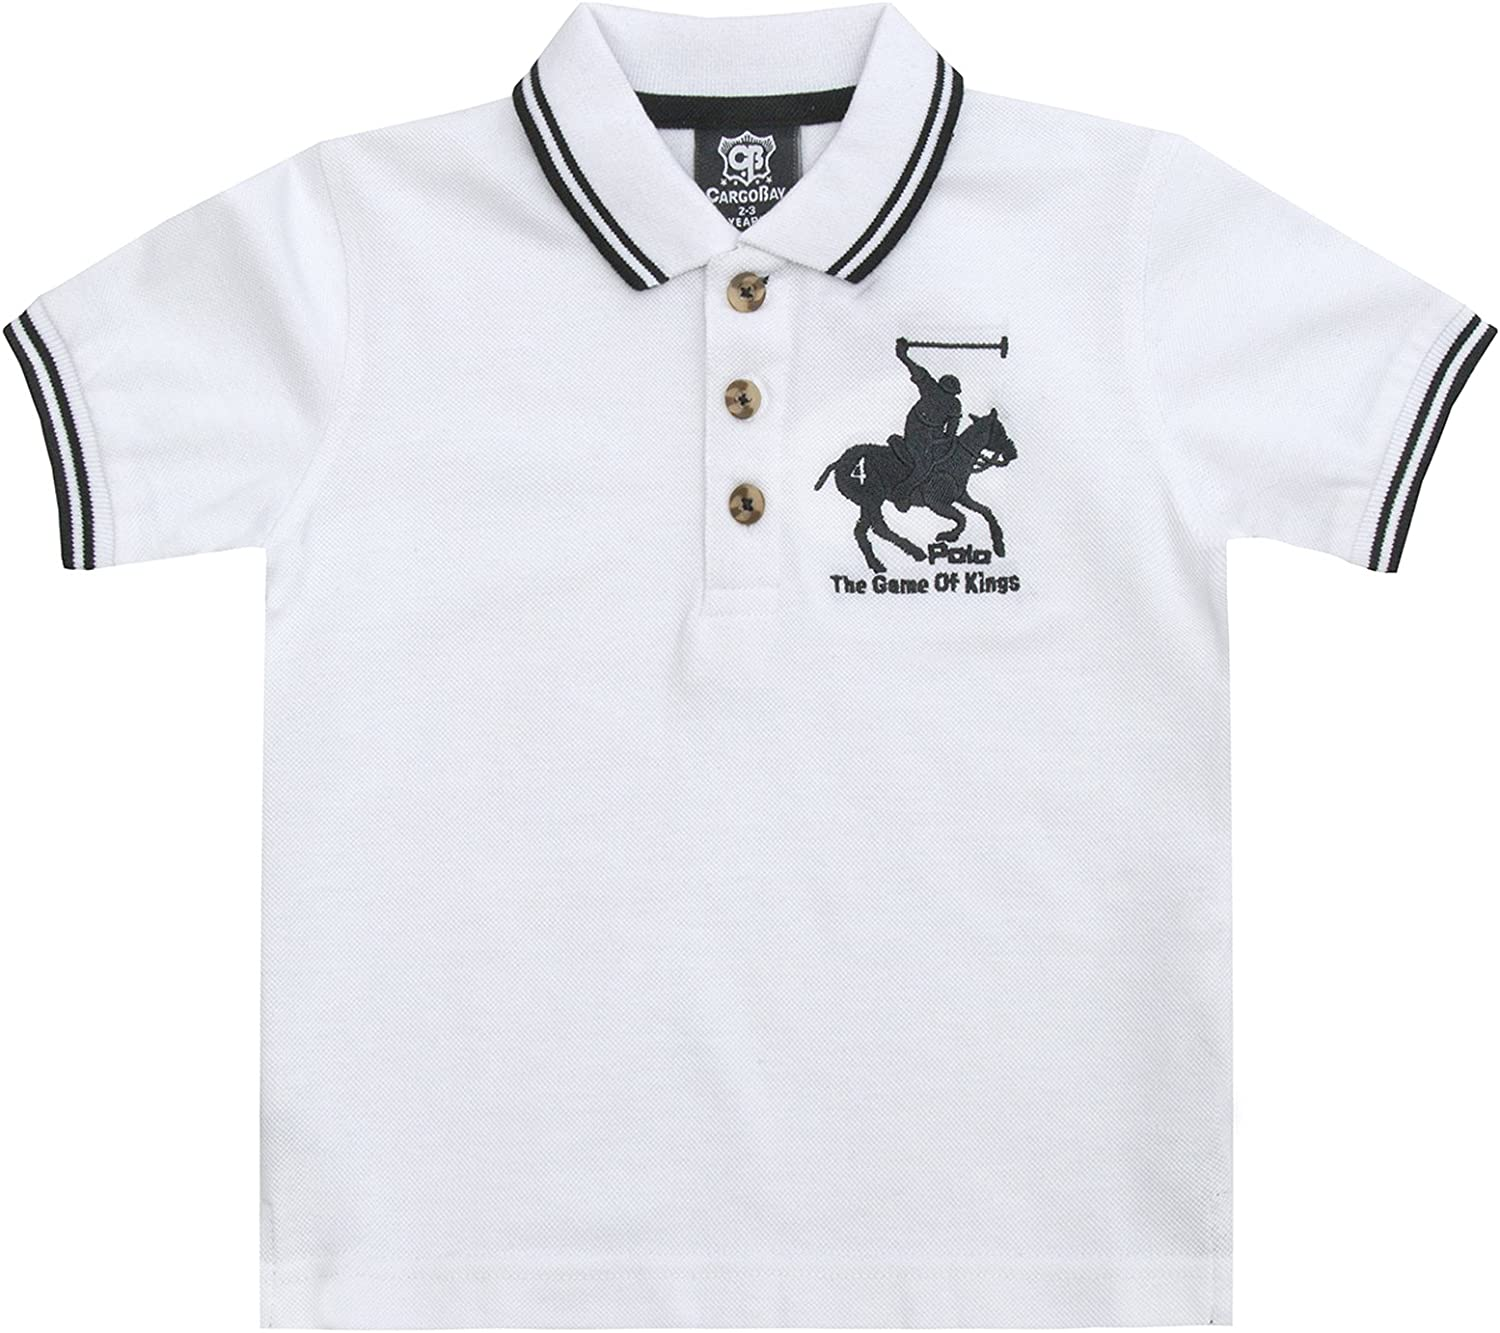 Strong Souls - Polo - Manga Corta - para niño Blanco Polo Shirt ...